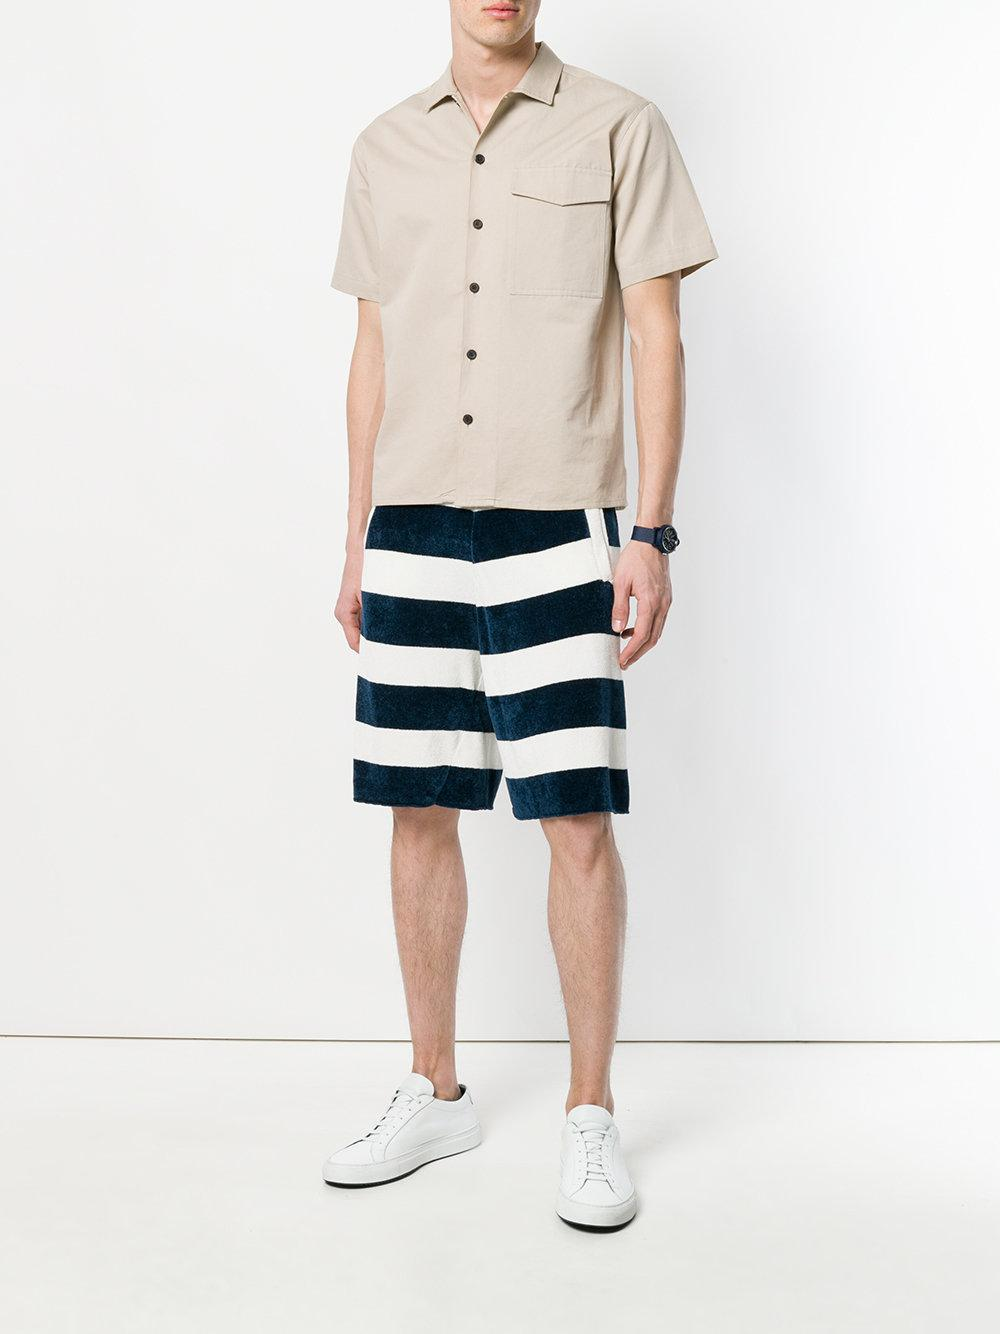 2b67c551443 Lyst - Laneus Striped Track Shorts in Blue for Men